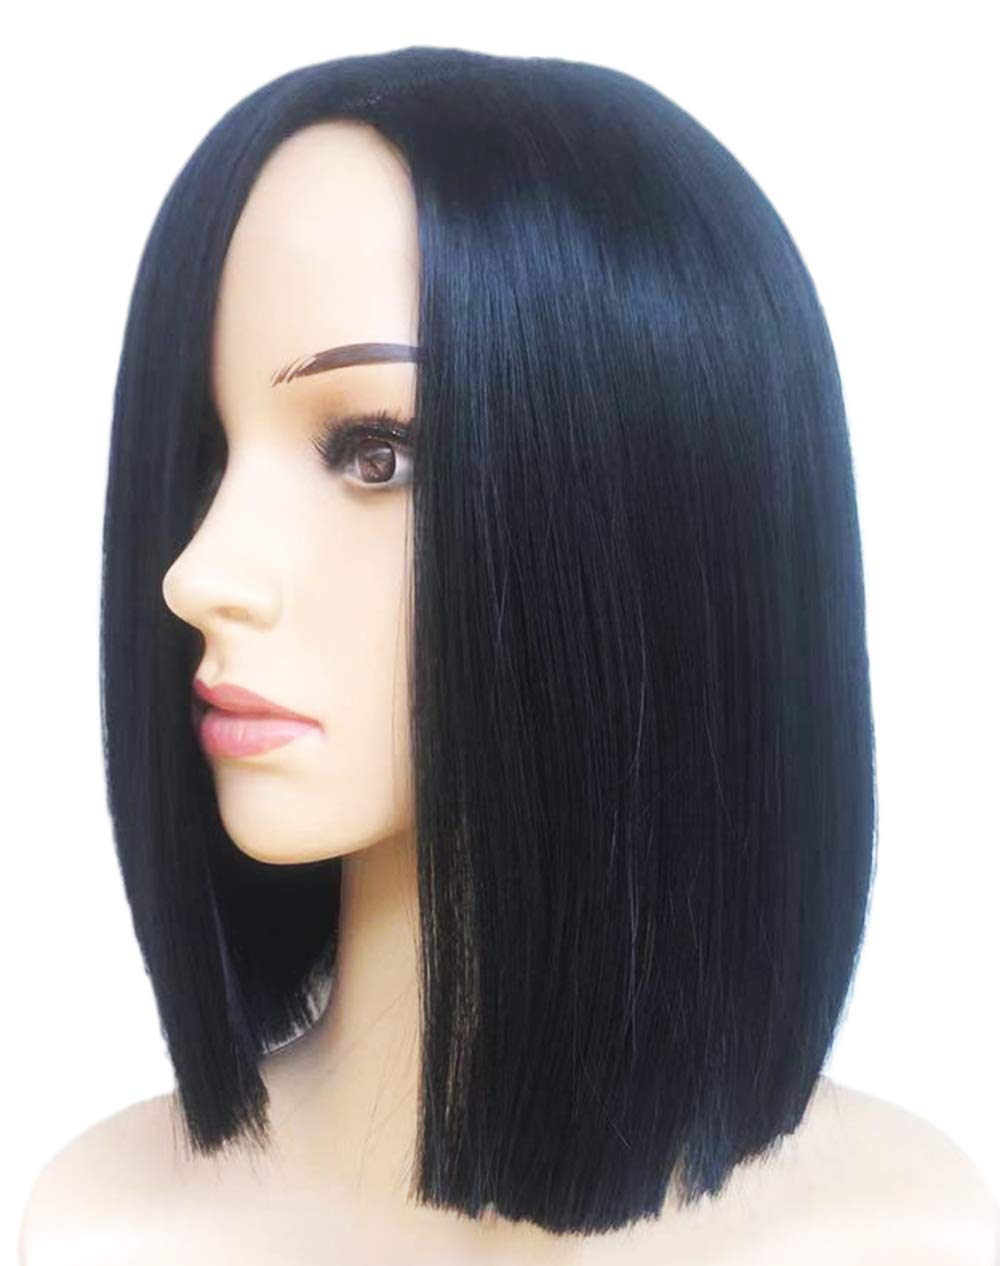 BLUBOON Bob Wigs Short Straight Synthetic Hair Wig for Women Black Halloween Costume Cosplay Wigs Party Wigs (HR5054 Black-10in) by BLUBOON